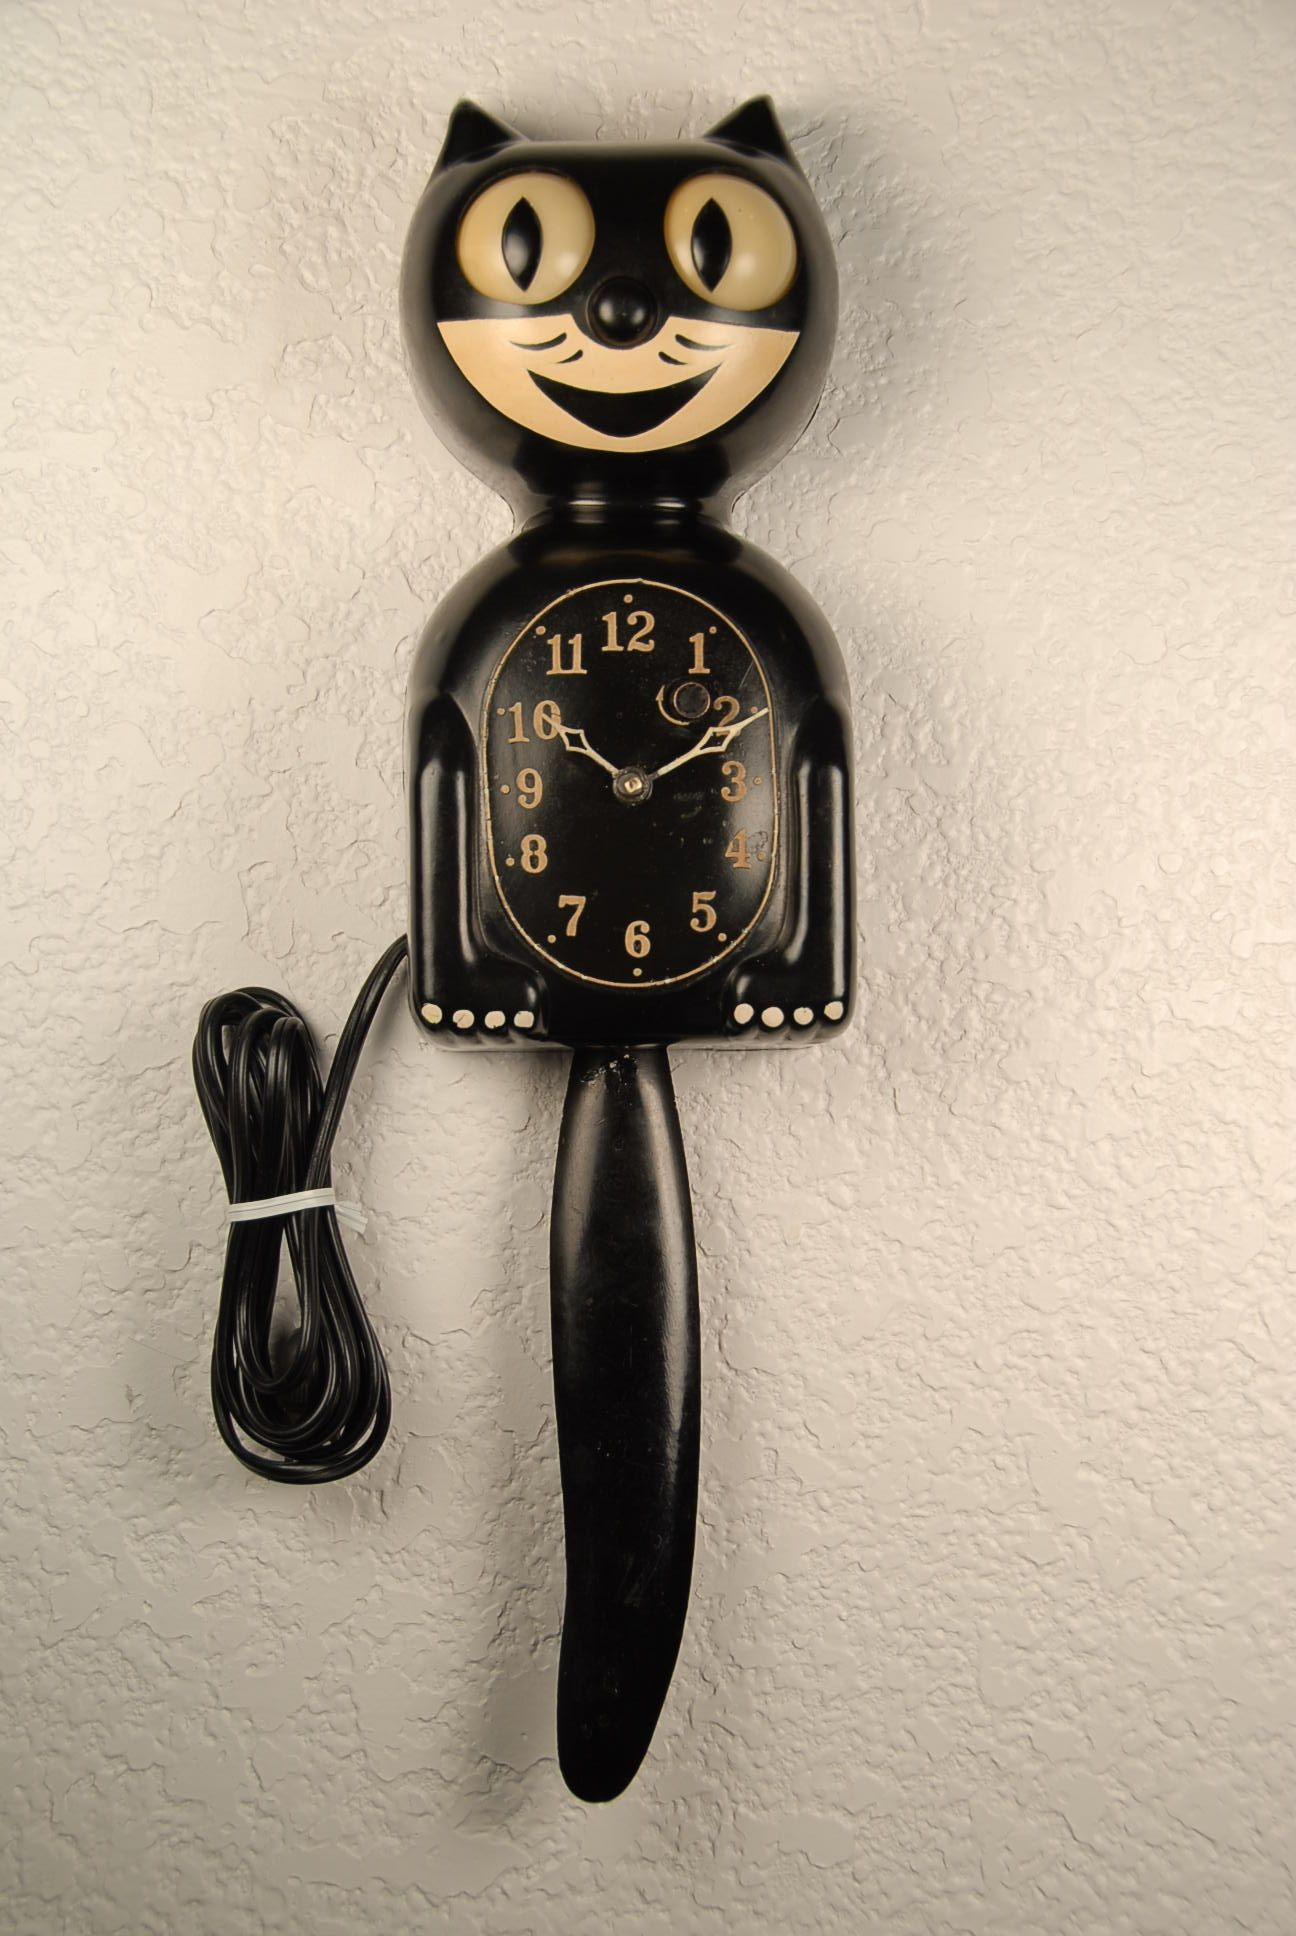 Image gallery kitty kat clock - Kitty cat clock ...